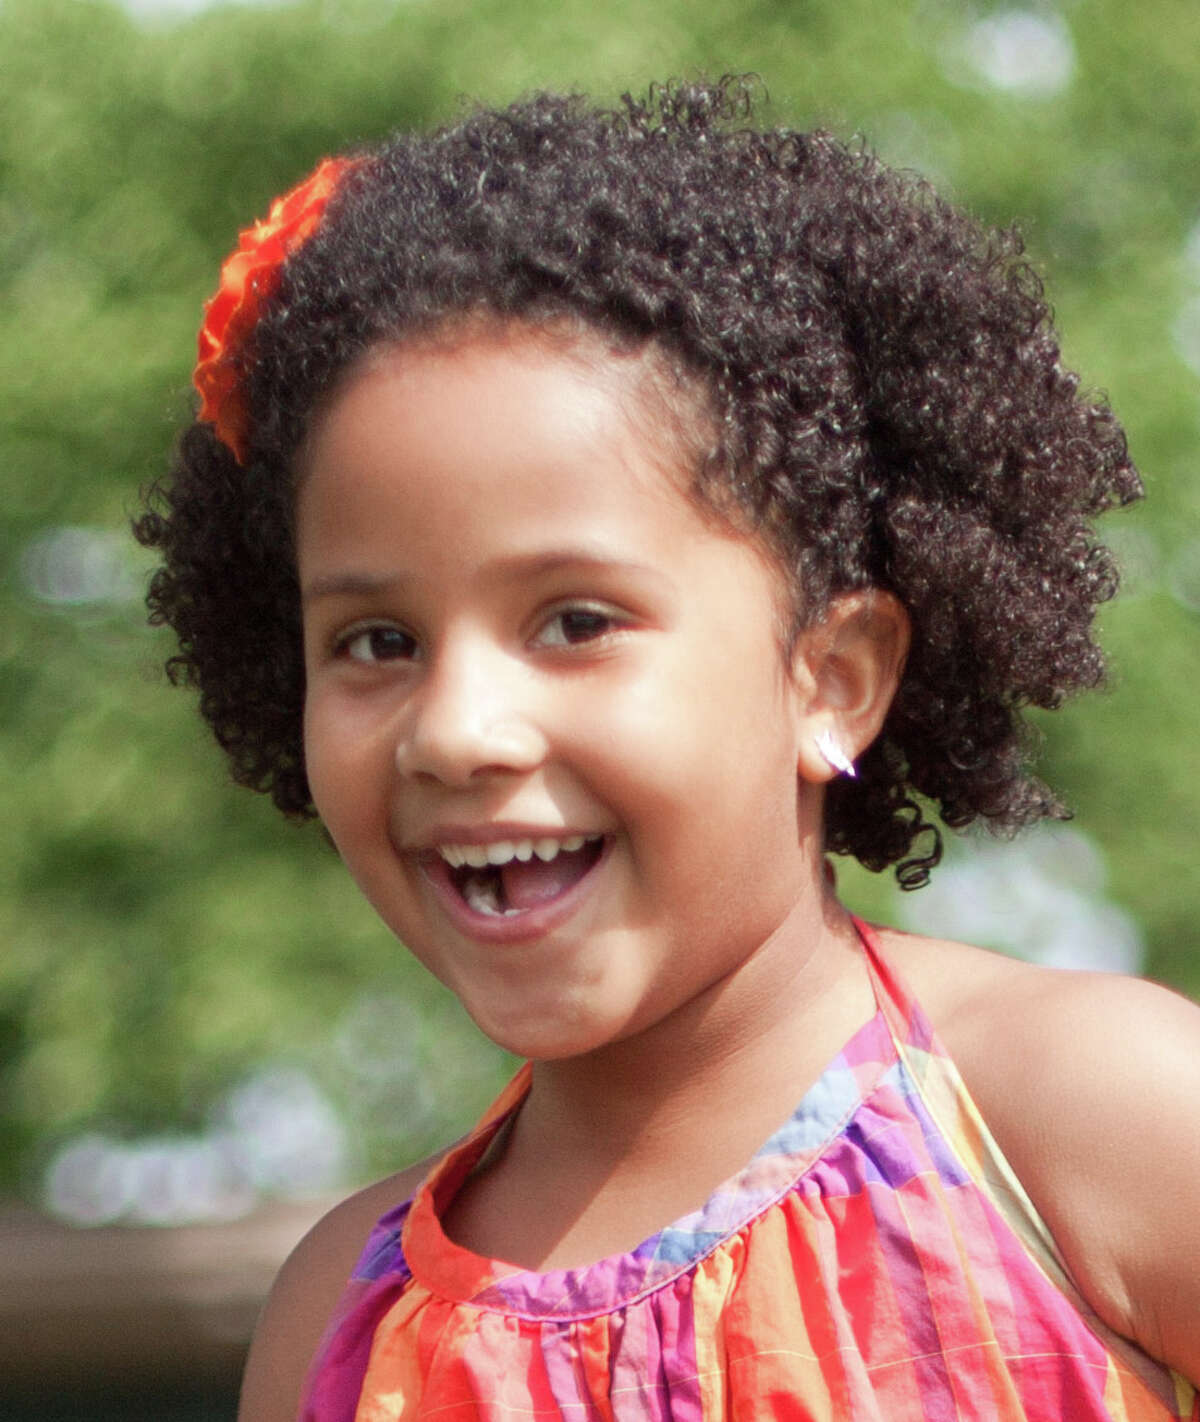 Ana Marquez-Greene a victim in the Sandy Hook Elementary School shooting in Newtown, Conn. on Friday Dec. 14, 2012.